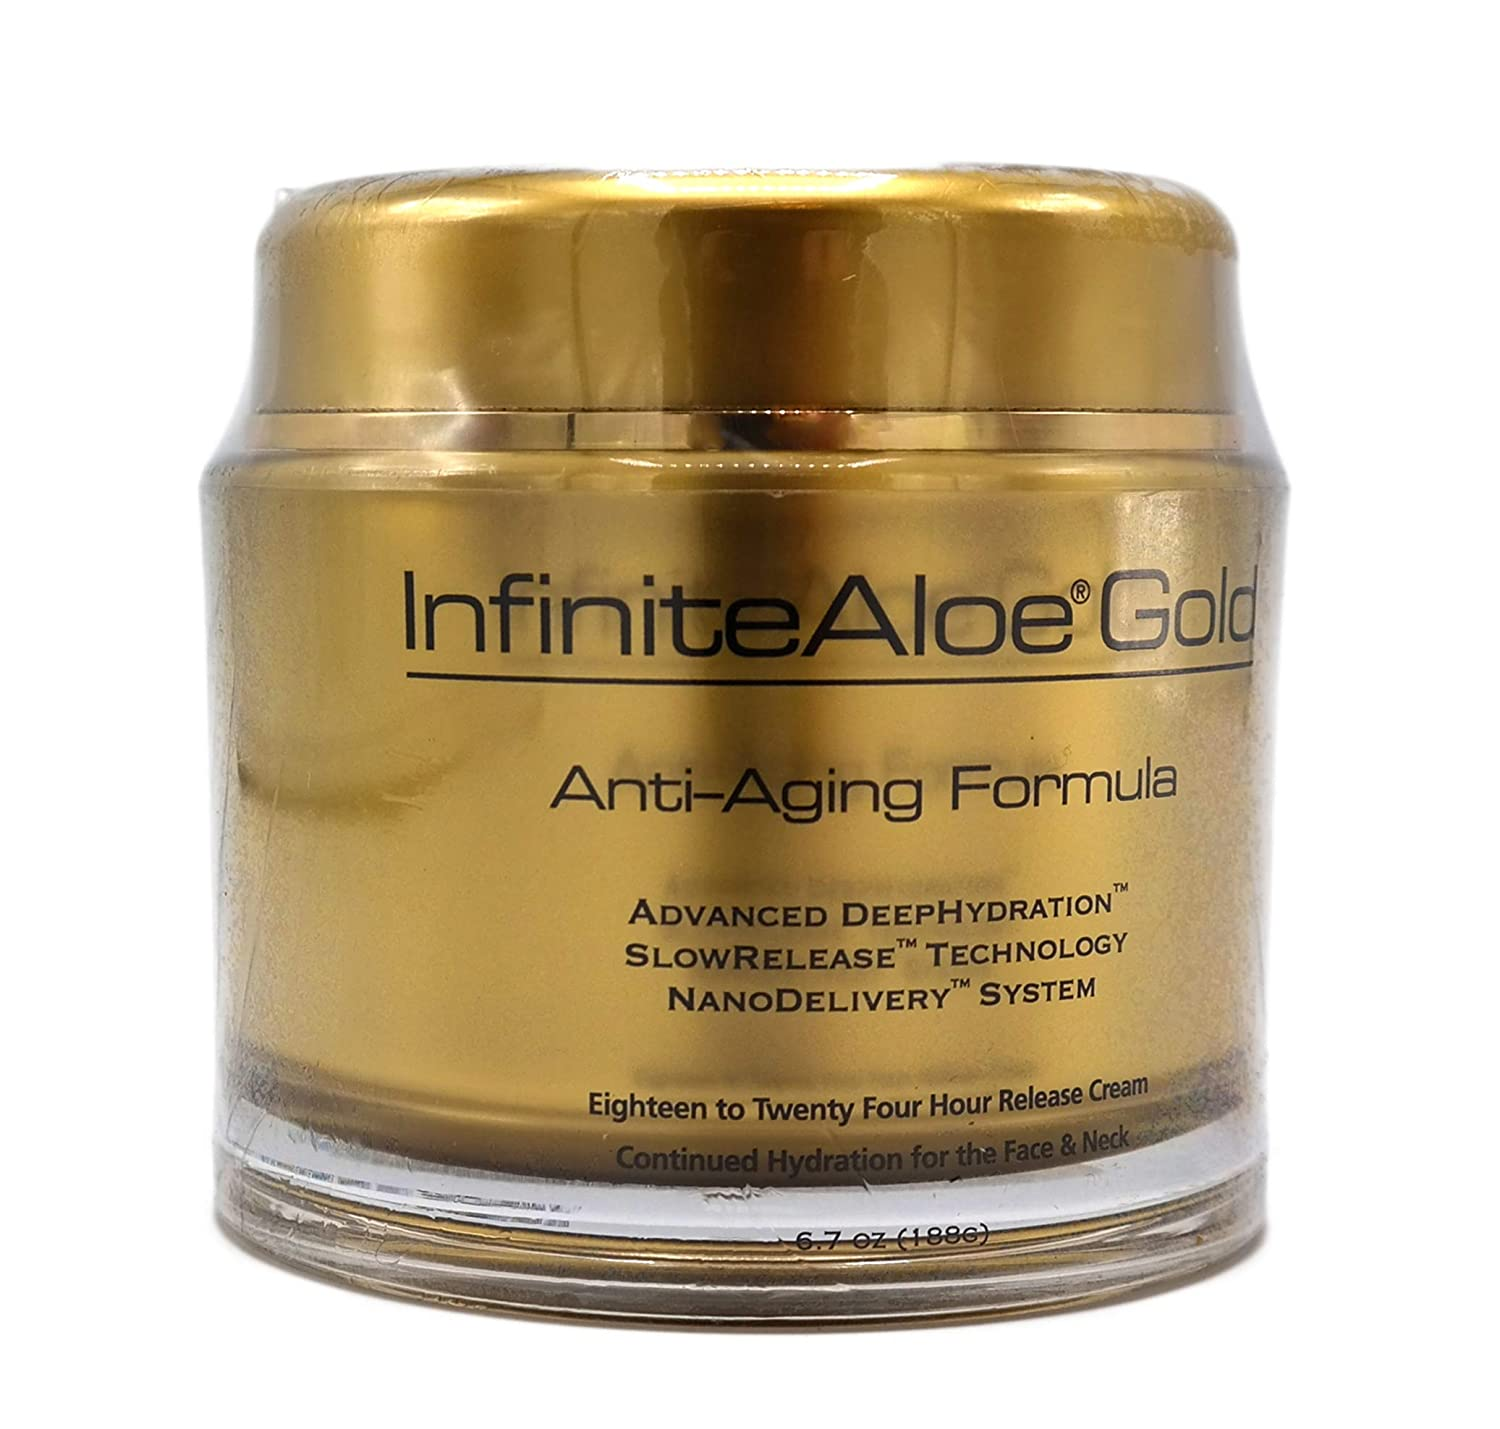 Infinite Aloe Gold Anti-Aging Formula 6.7 oz. Jar